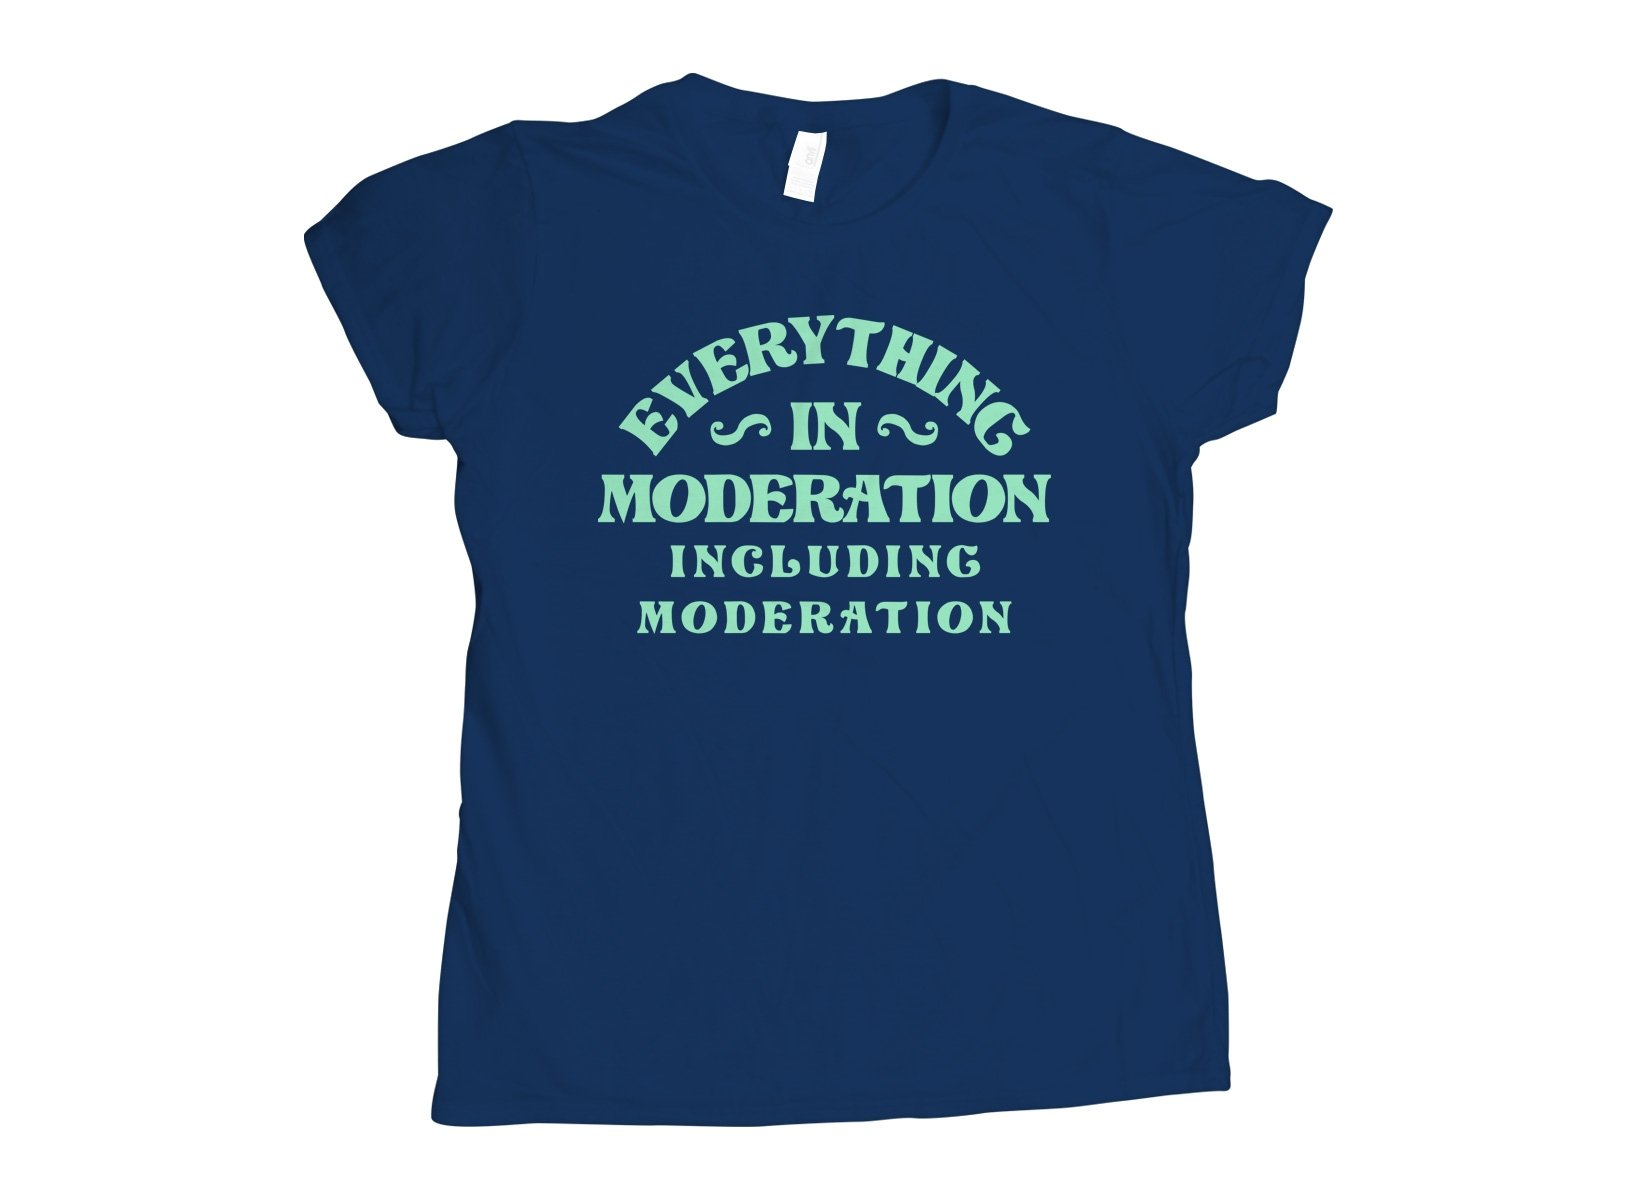 Everything In Moderation Including Moderation on Womens T-Shirt